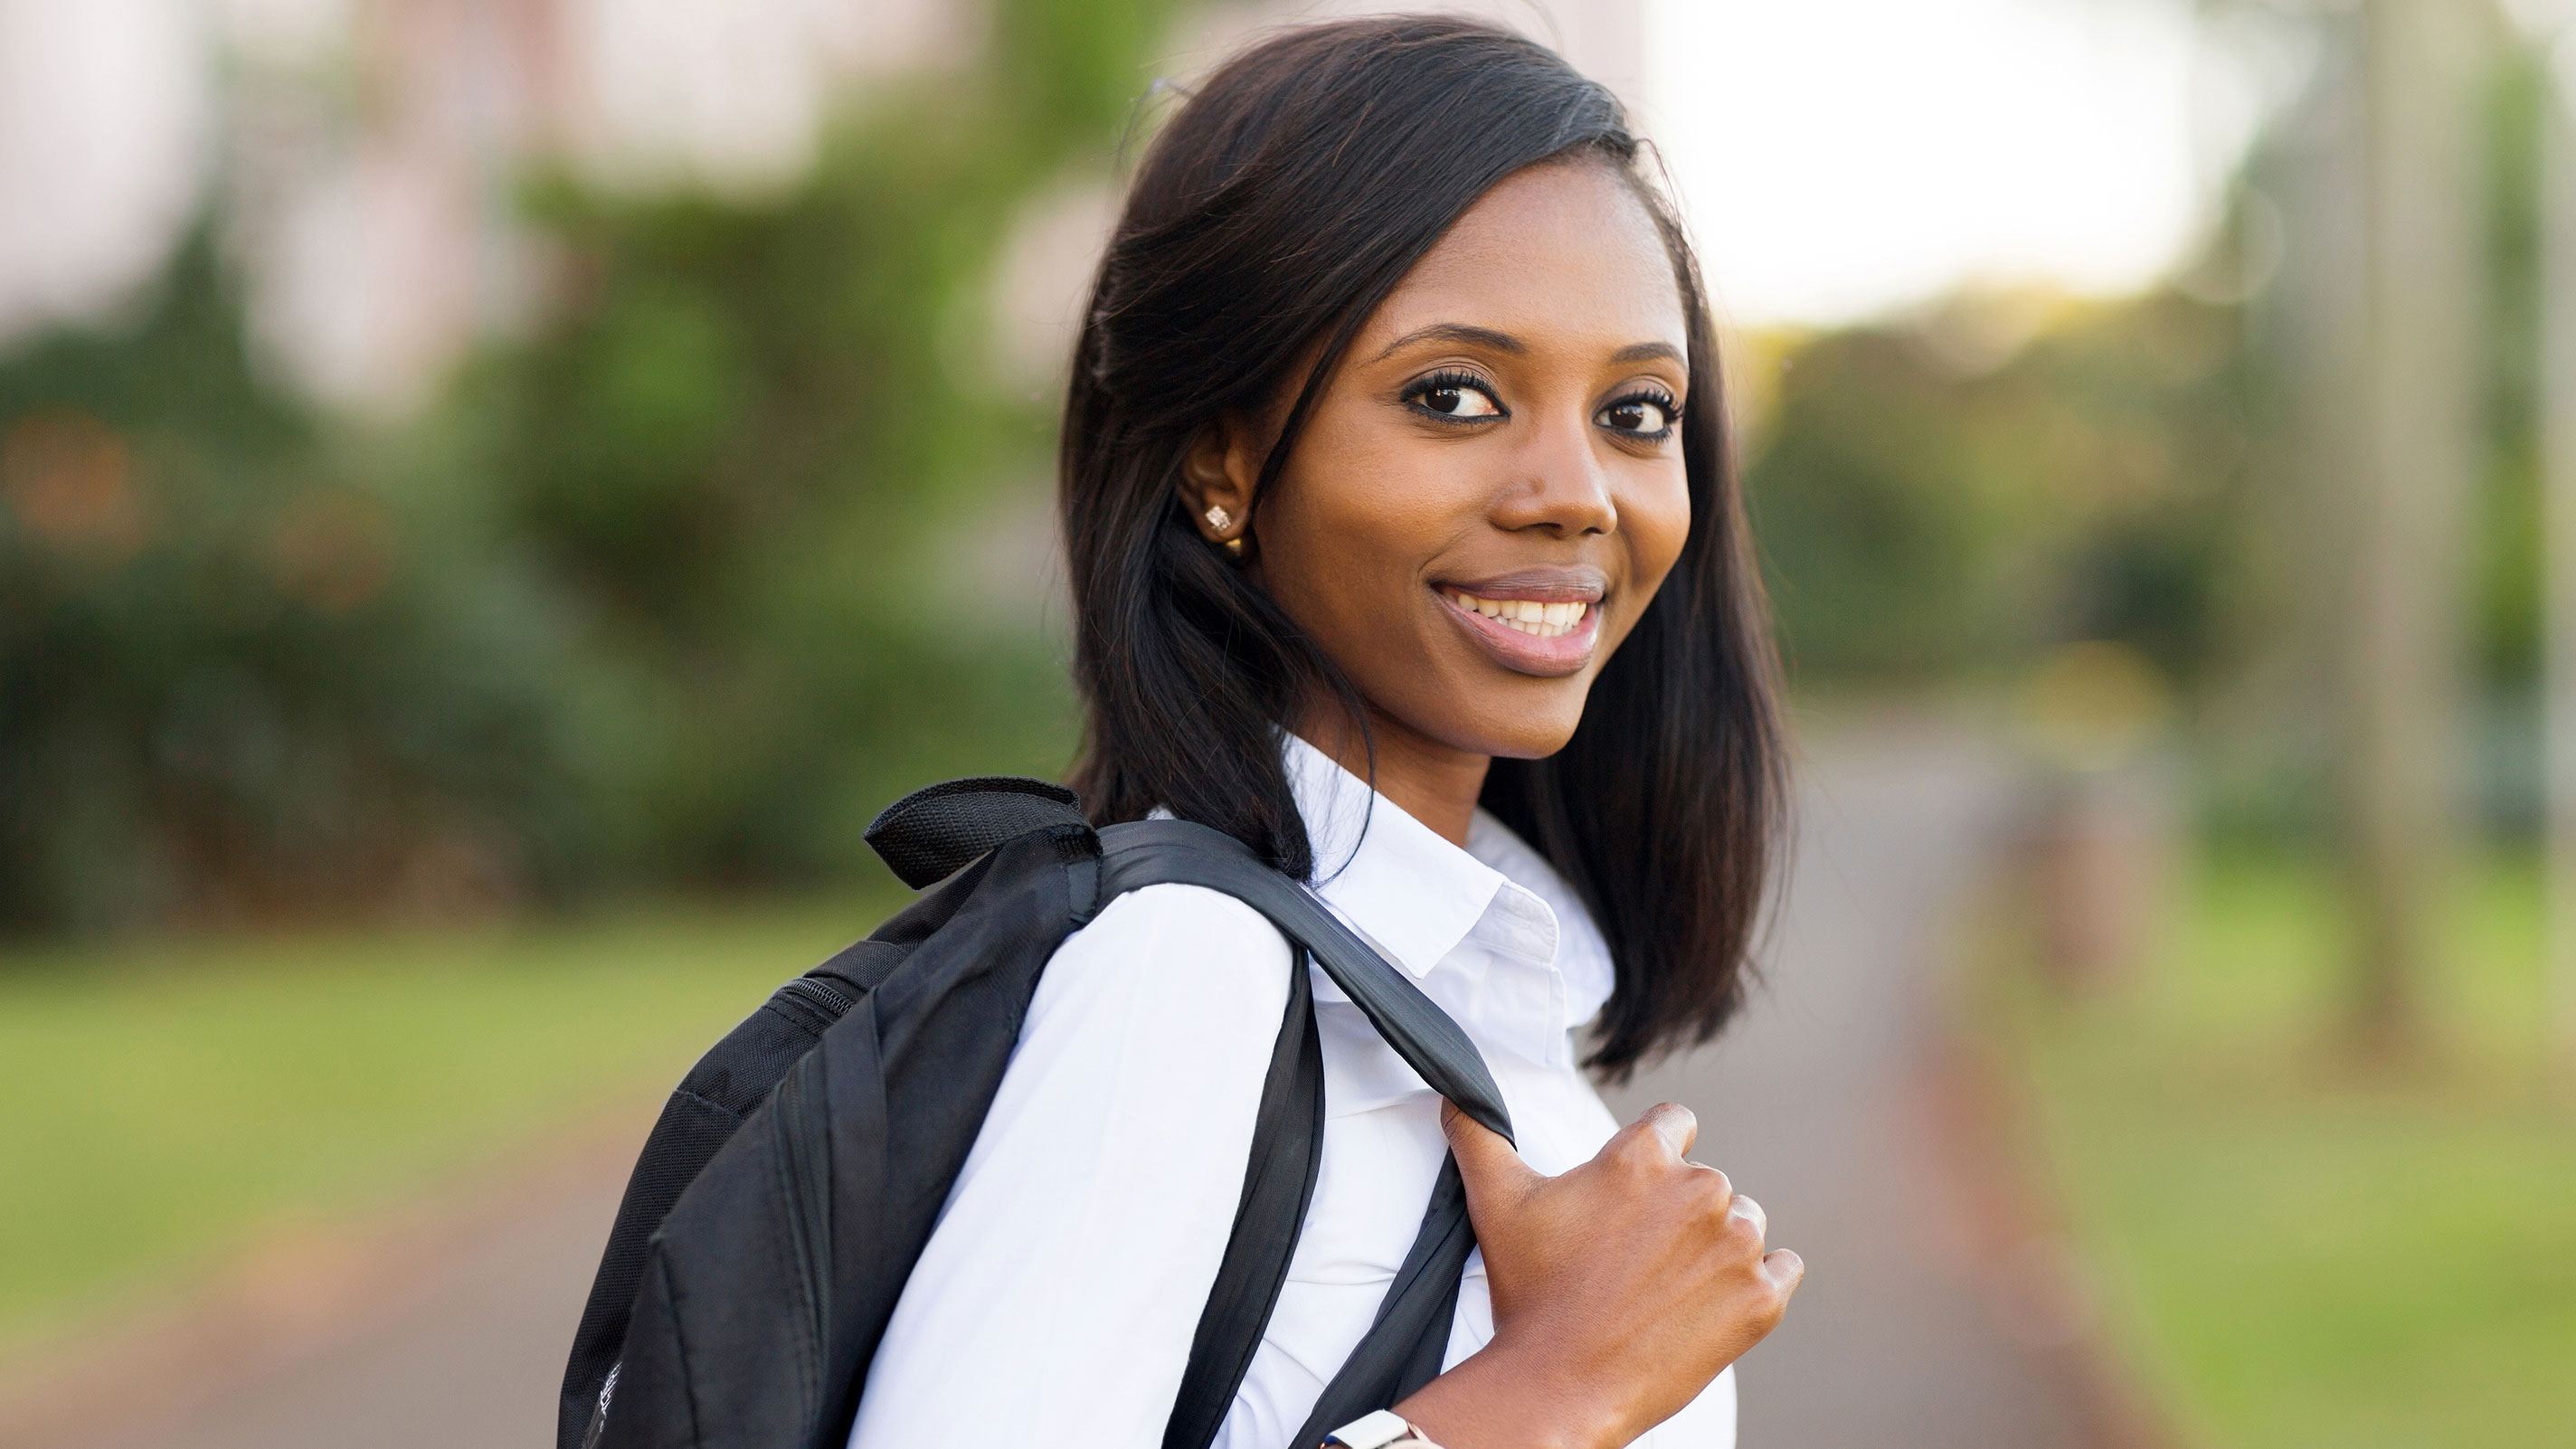 Female student holding backpack smiles at camera